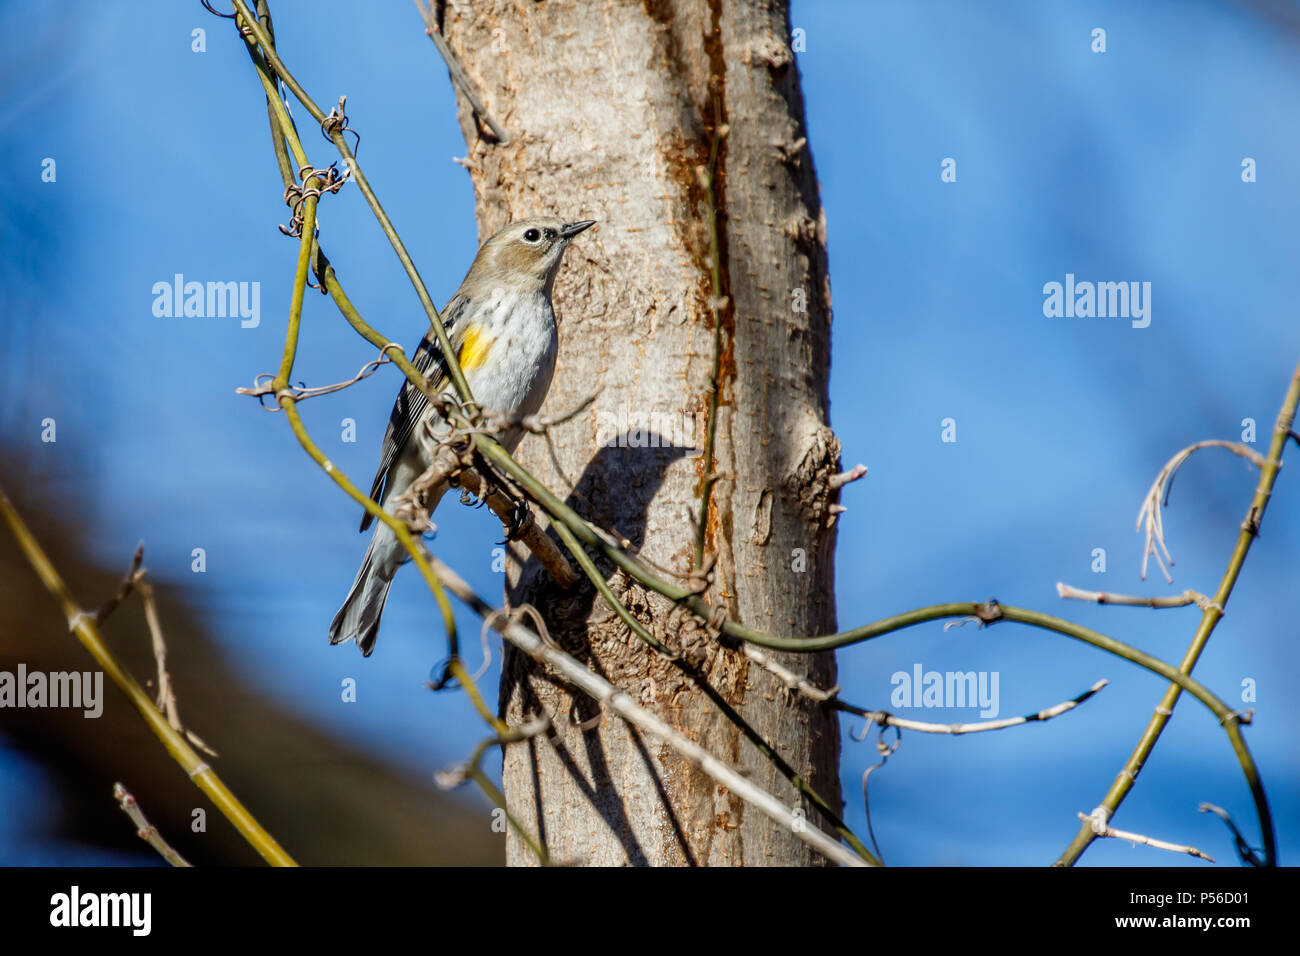 Yrllow Rumped Warbler (Setophaga coronata) perched in a winter tree. - Stock Image